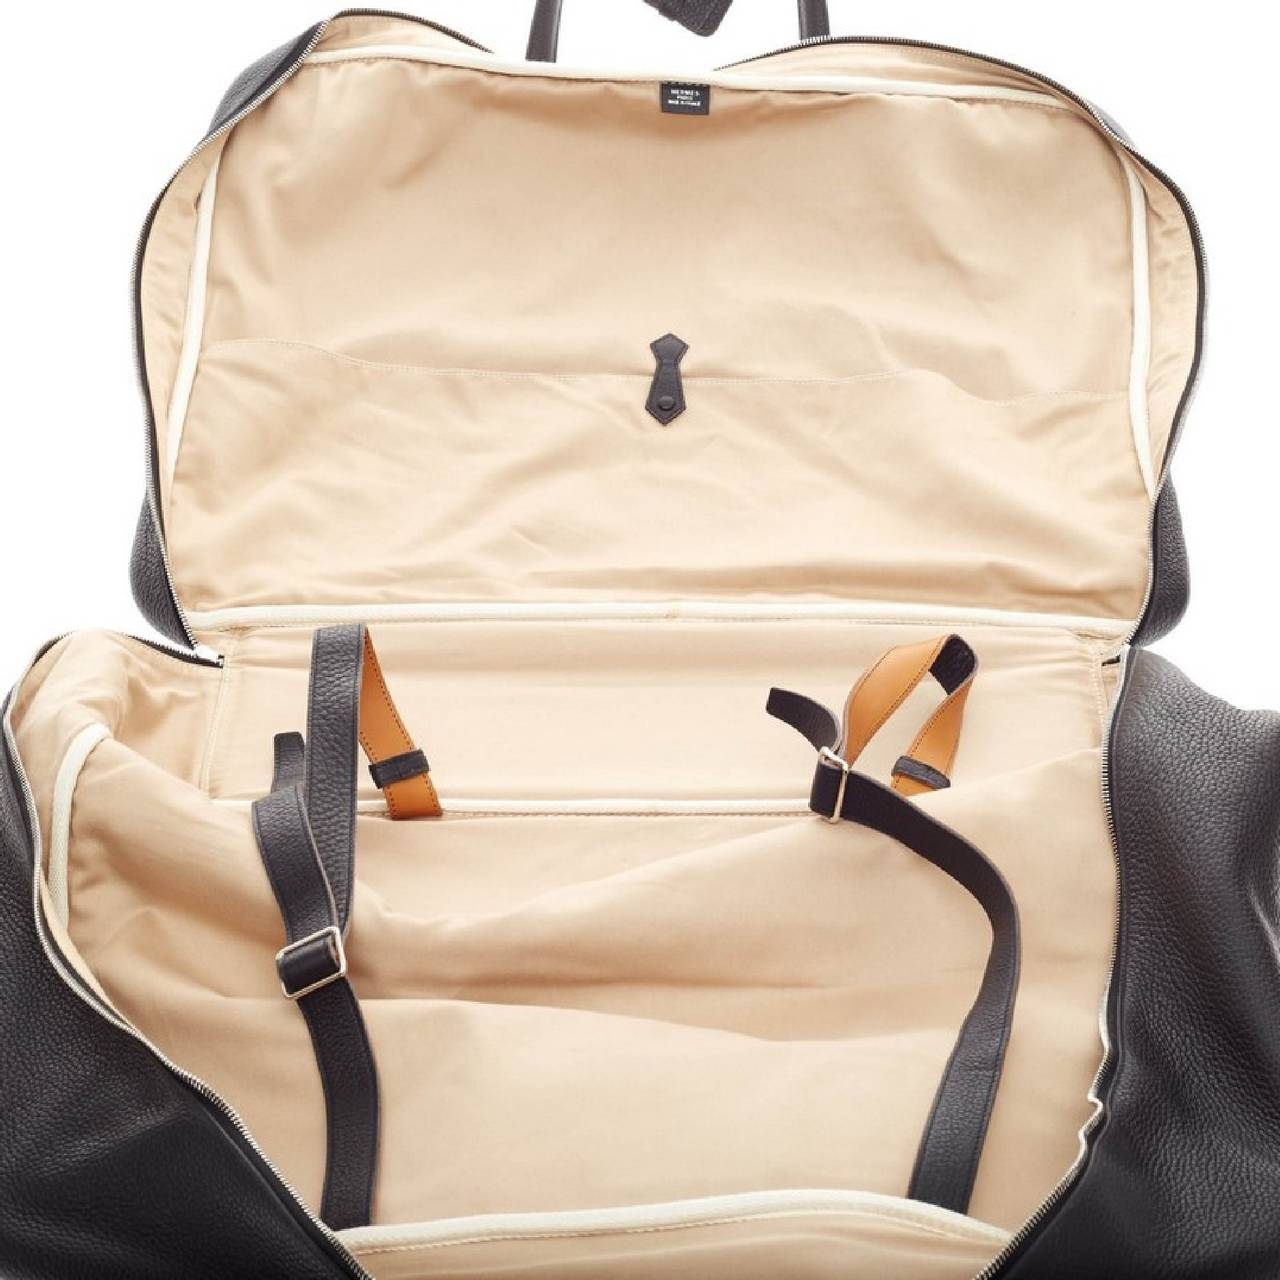 herms bag - Hermes Victoria II Travel Clemence 50 at 1stdibs